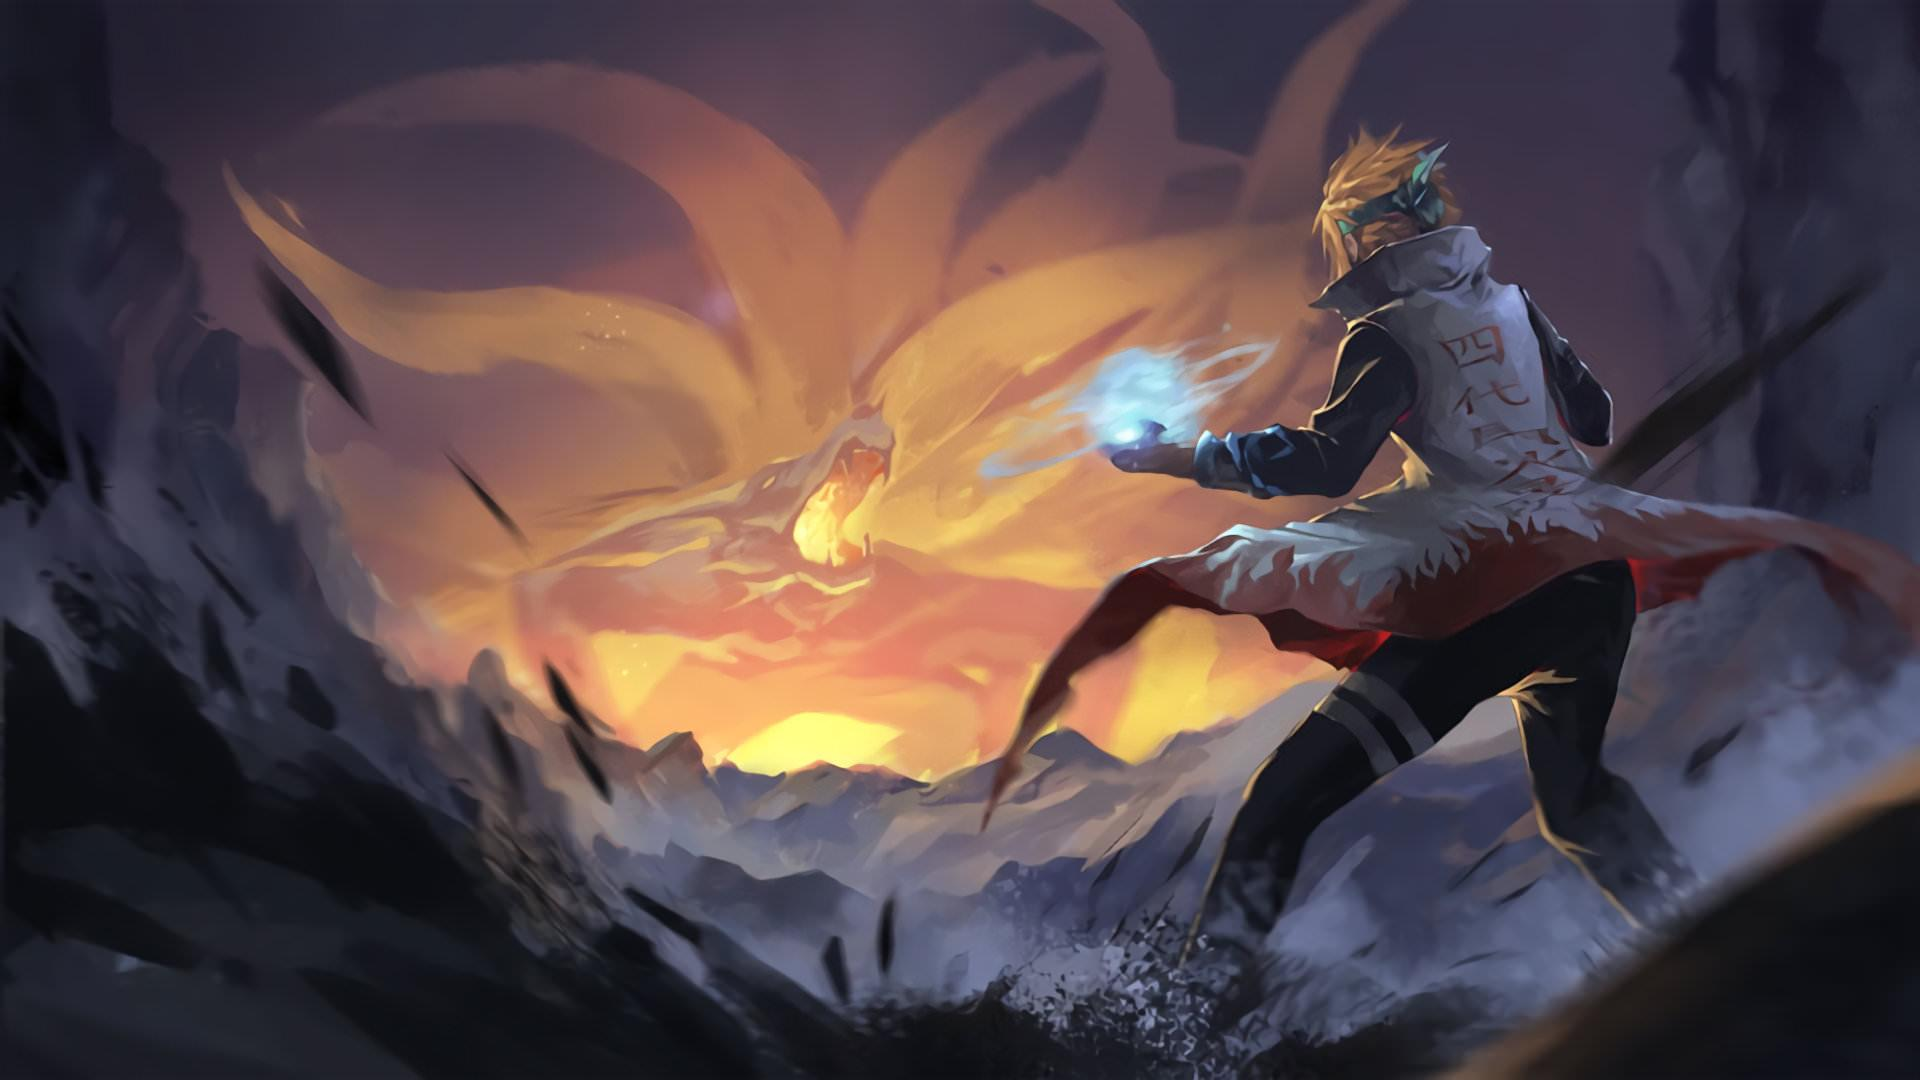 Naruto Backgrounds 1920x1080 - Wallpaper Cave